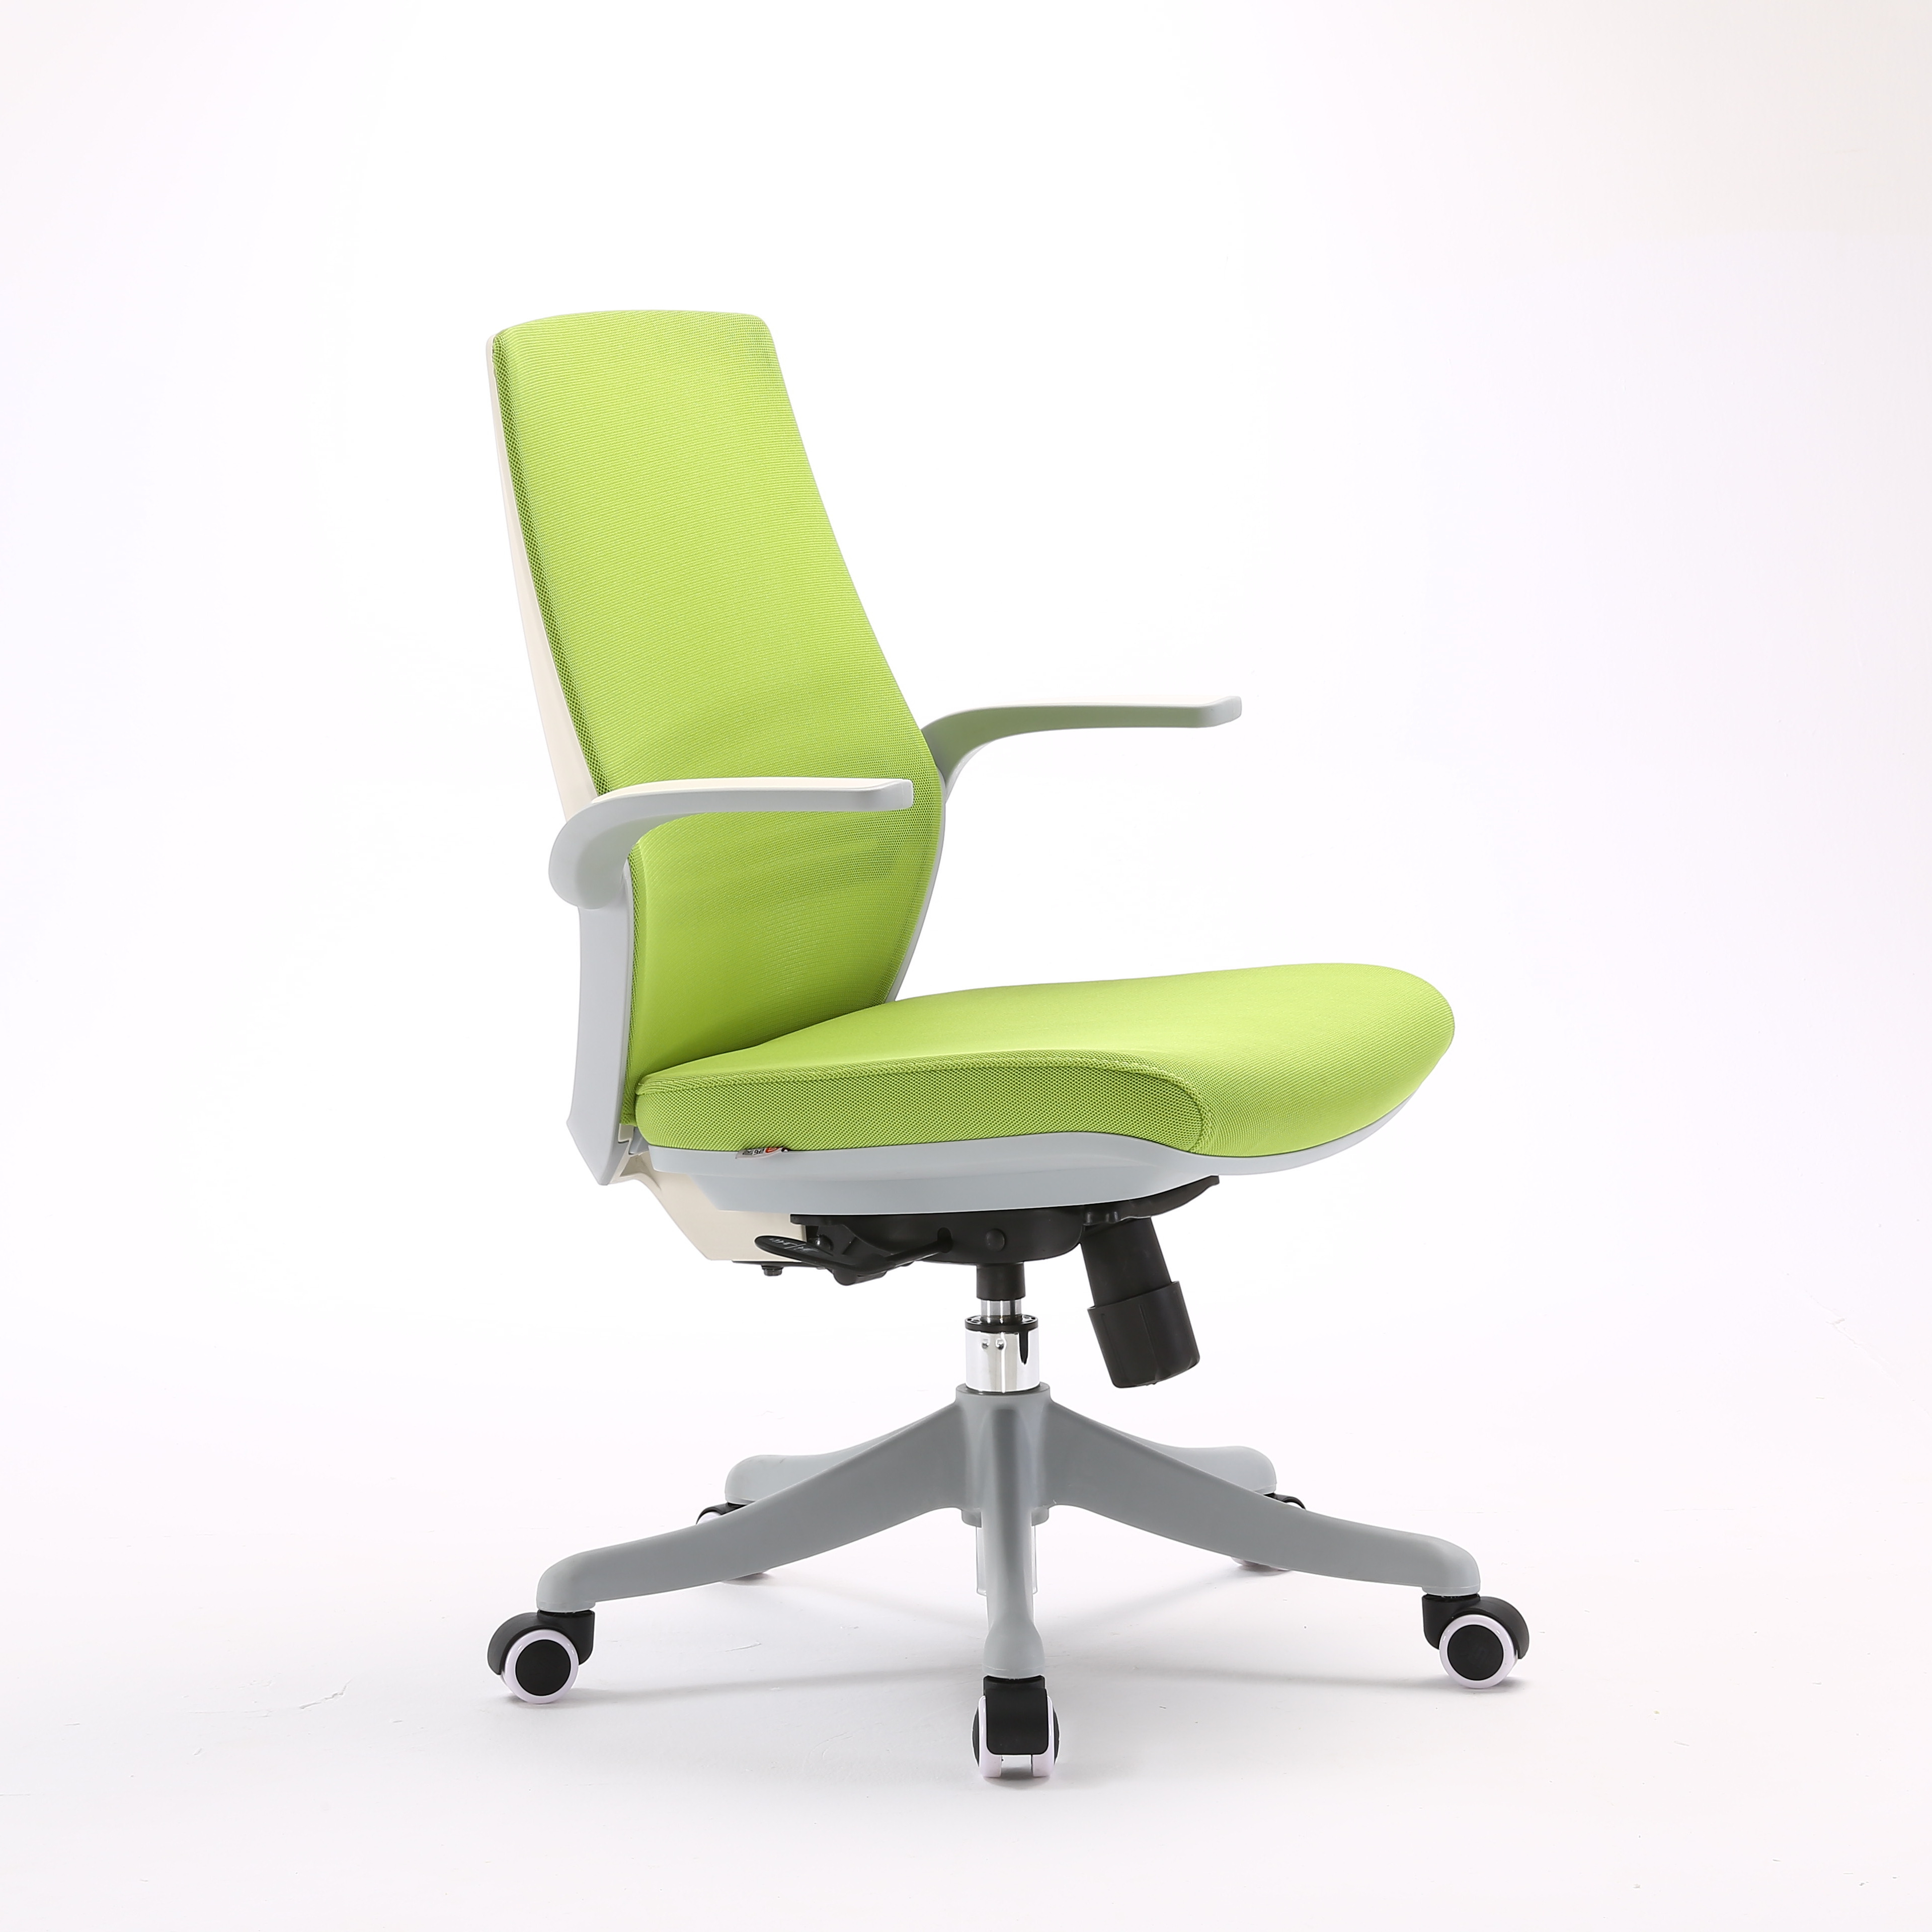 Office Chair Ergonomic Support With Advanced Design Middle back Green Color silla de oficina